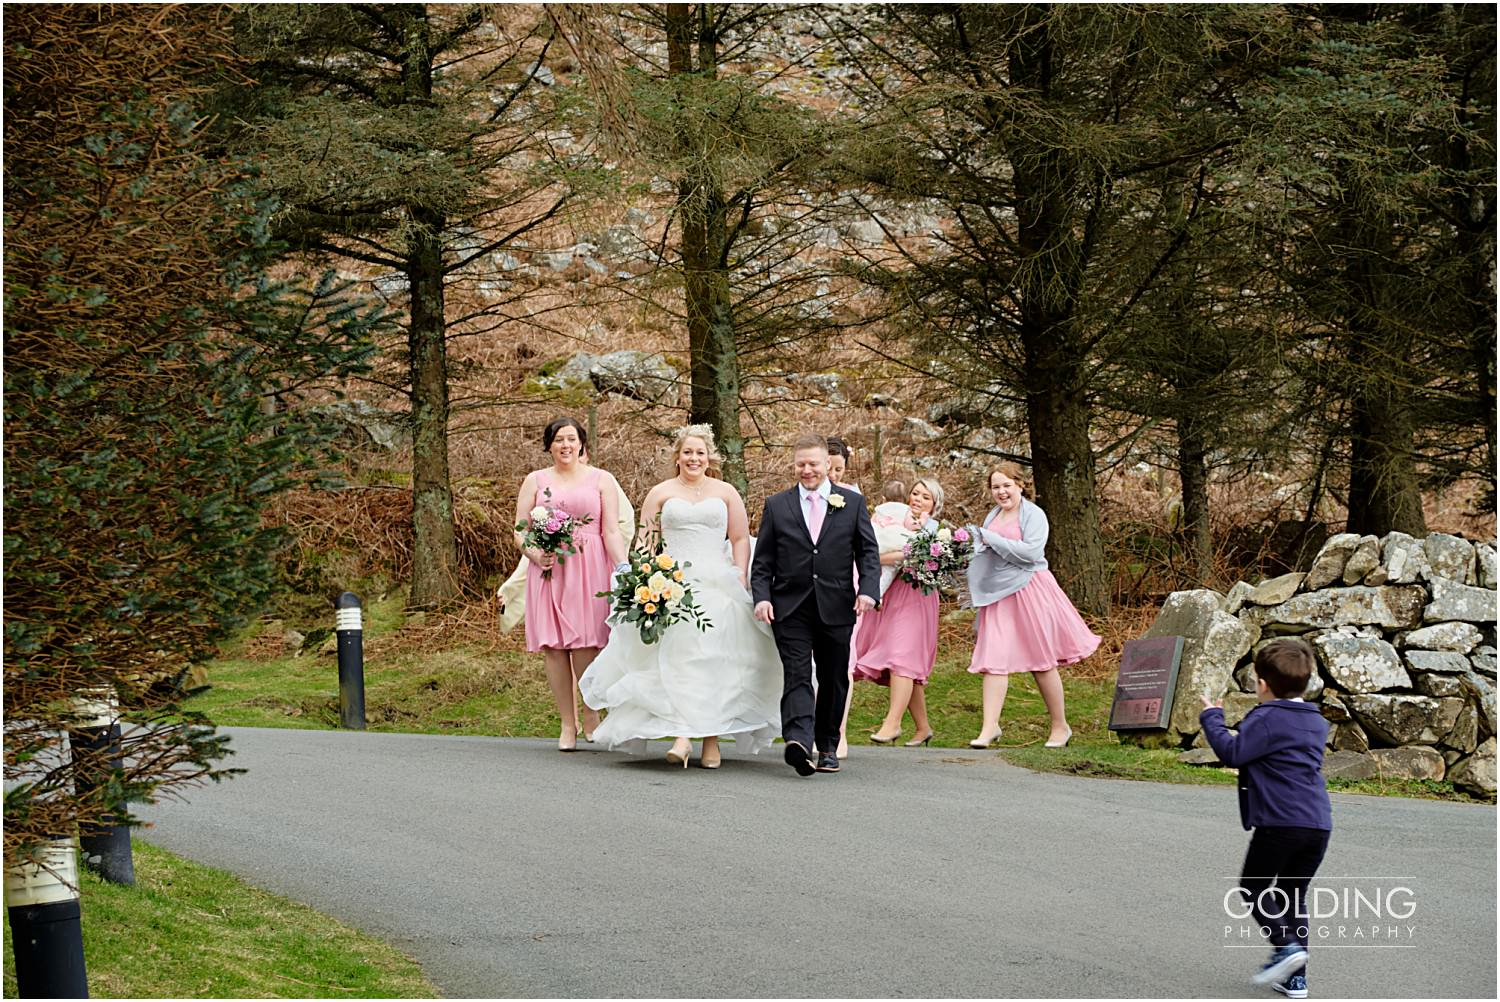 Nant Gwrtheyrn wedding photographer - Sara and Will